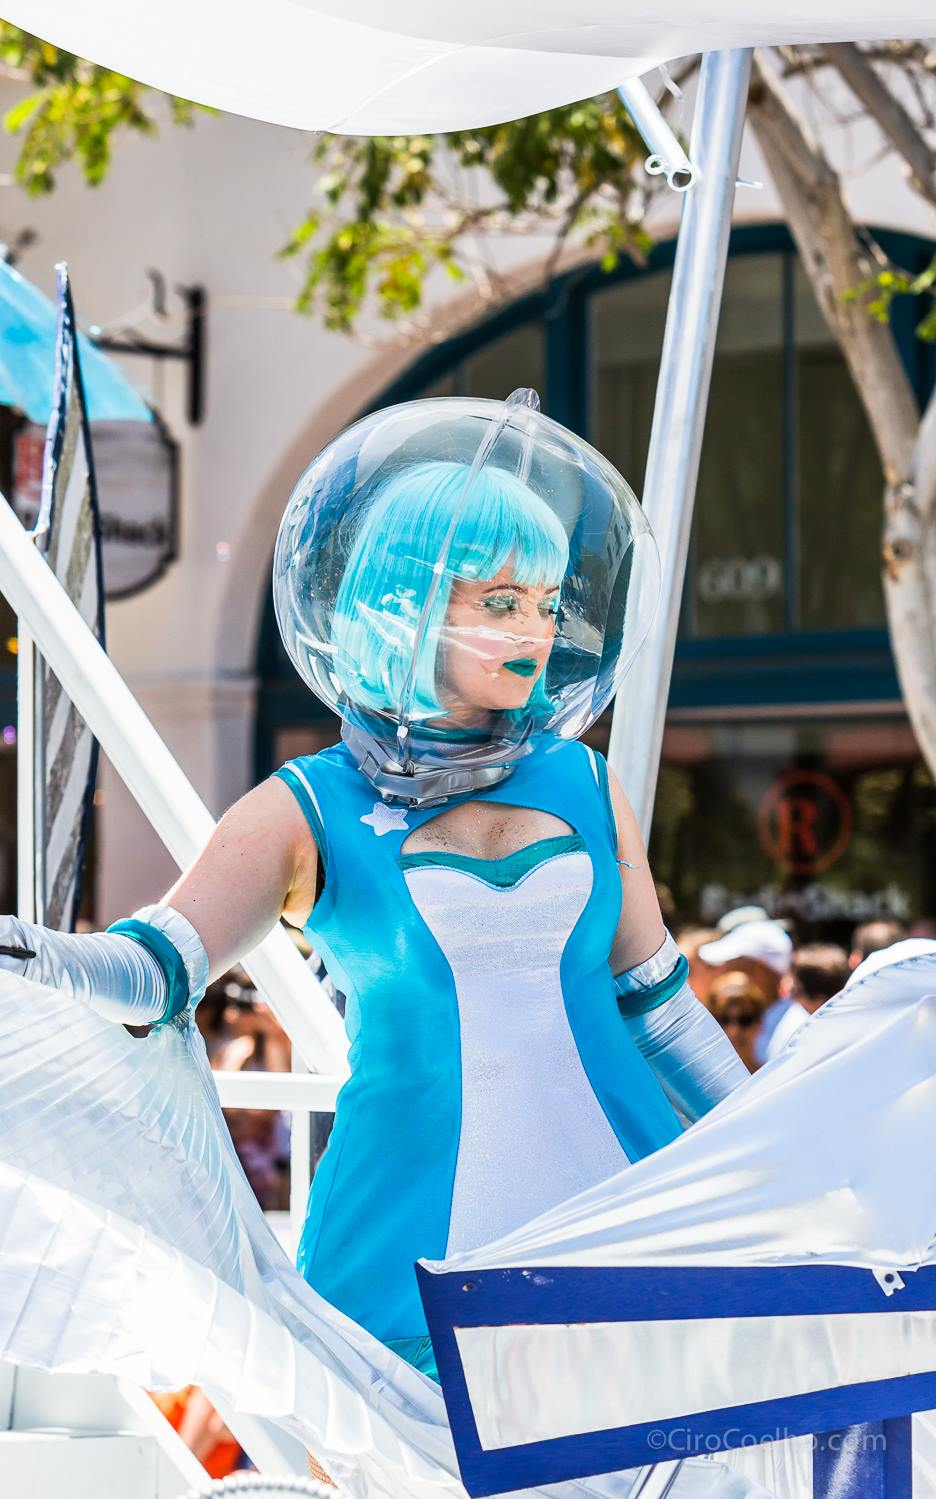 She was out of this world for the Summer Solstice Parade this year.